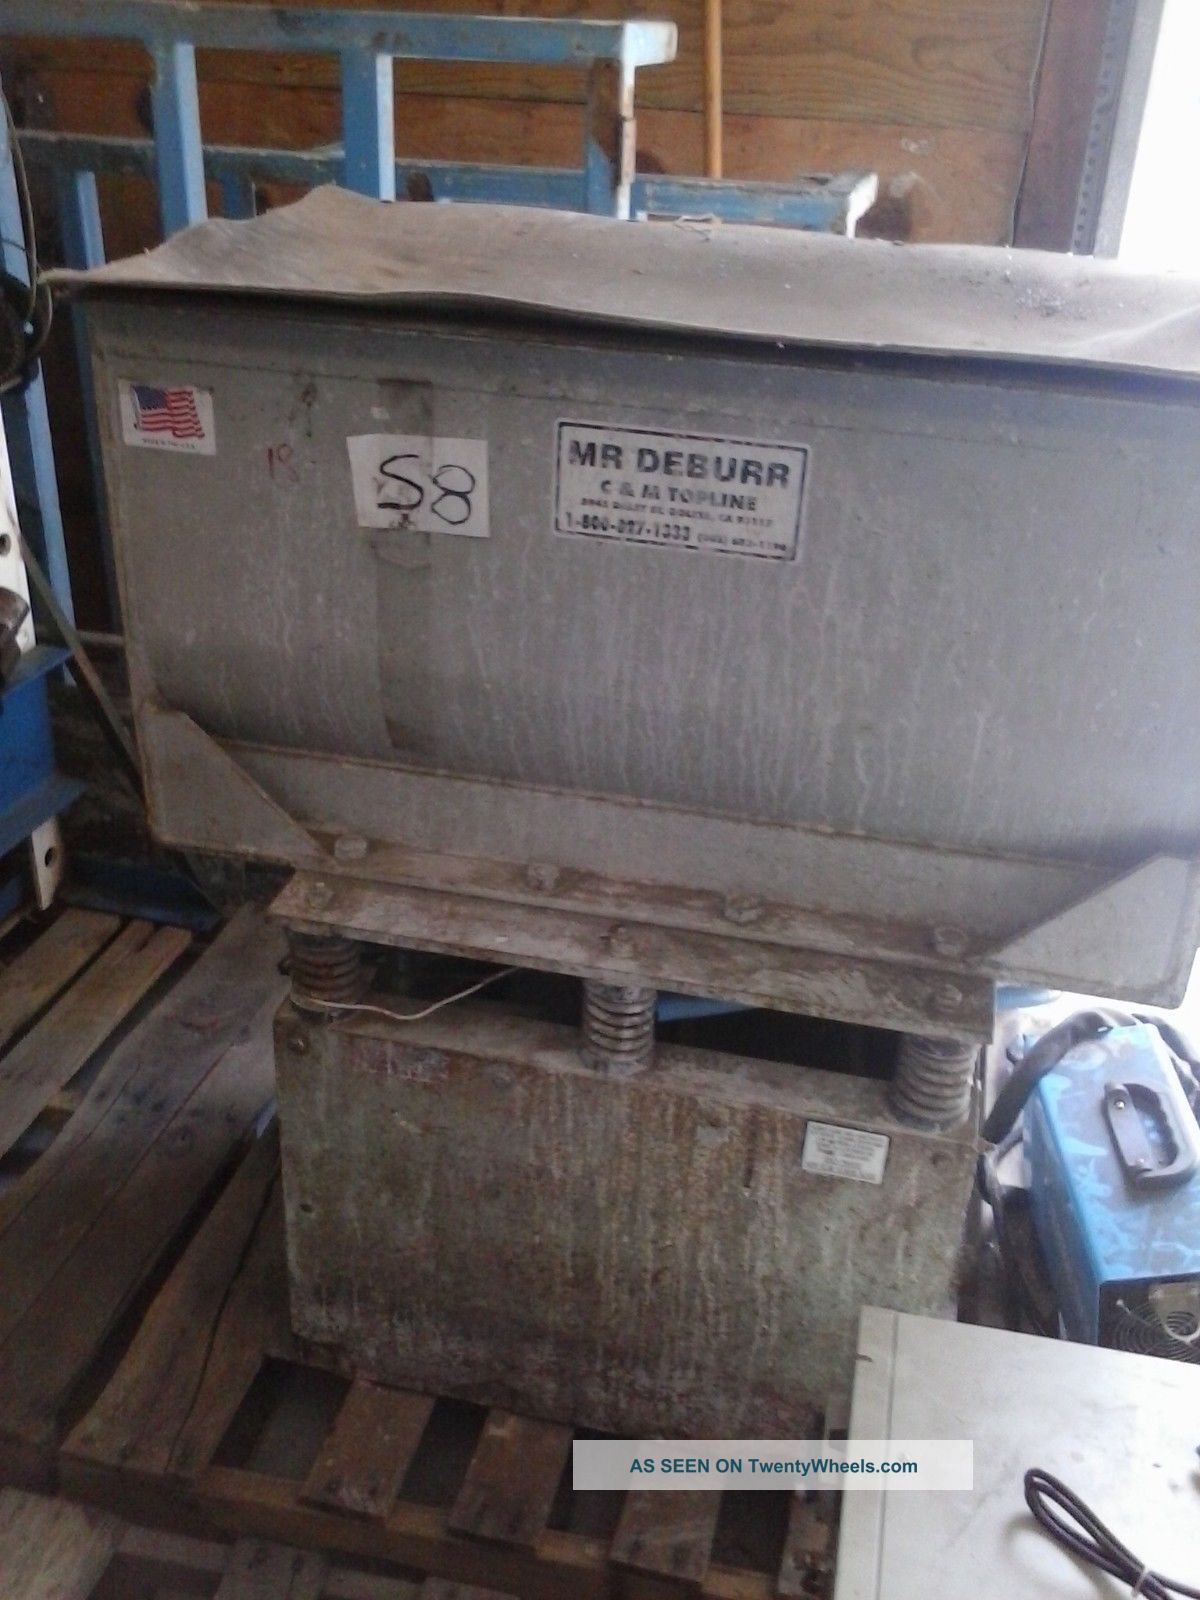 Mr Deburr Vibratory Tumbler Machine Finishing Machines photo